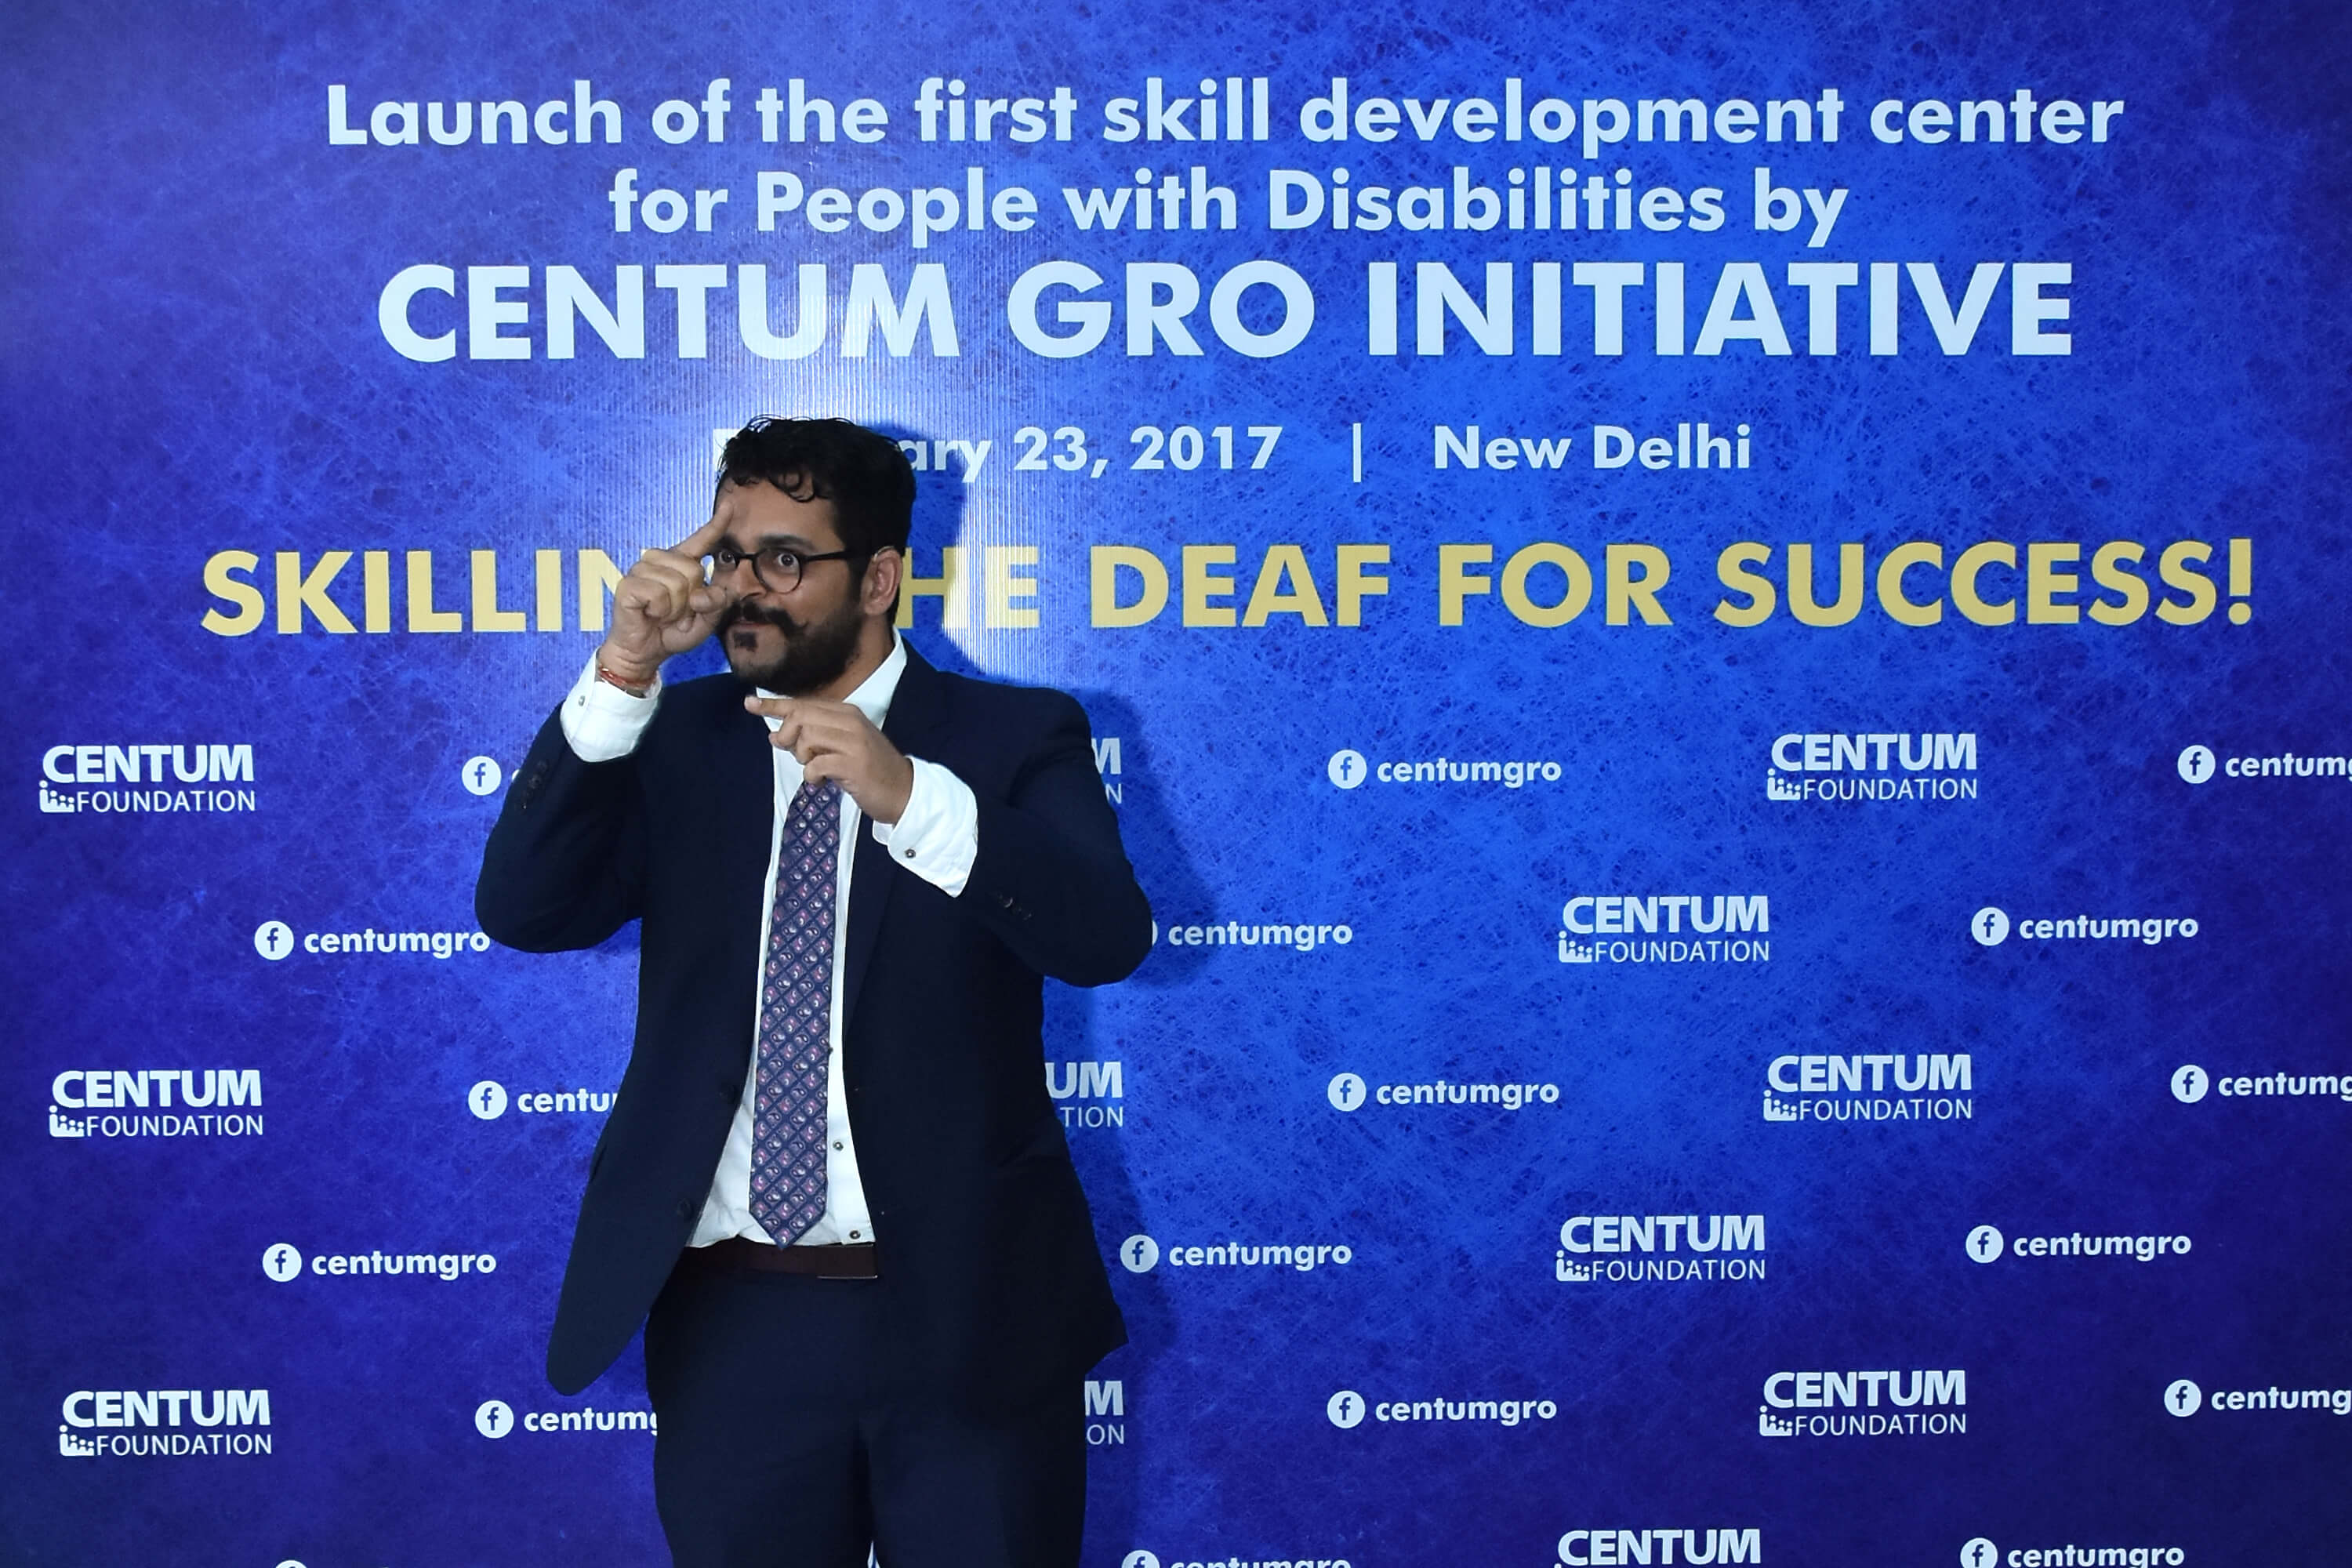 Deaf candidates face multiple challenges in job markets: Interview with AVP – Centum Foundation